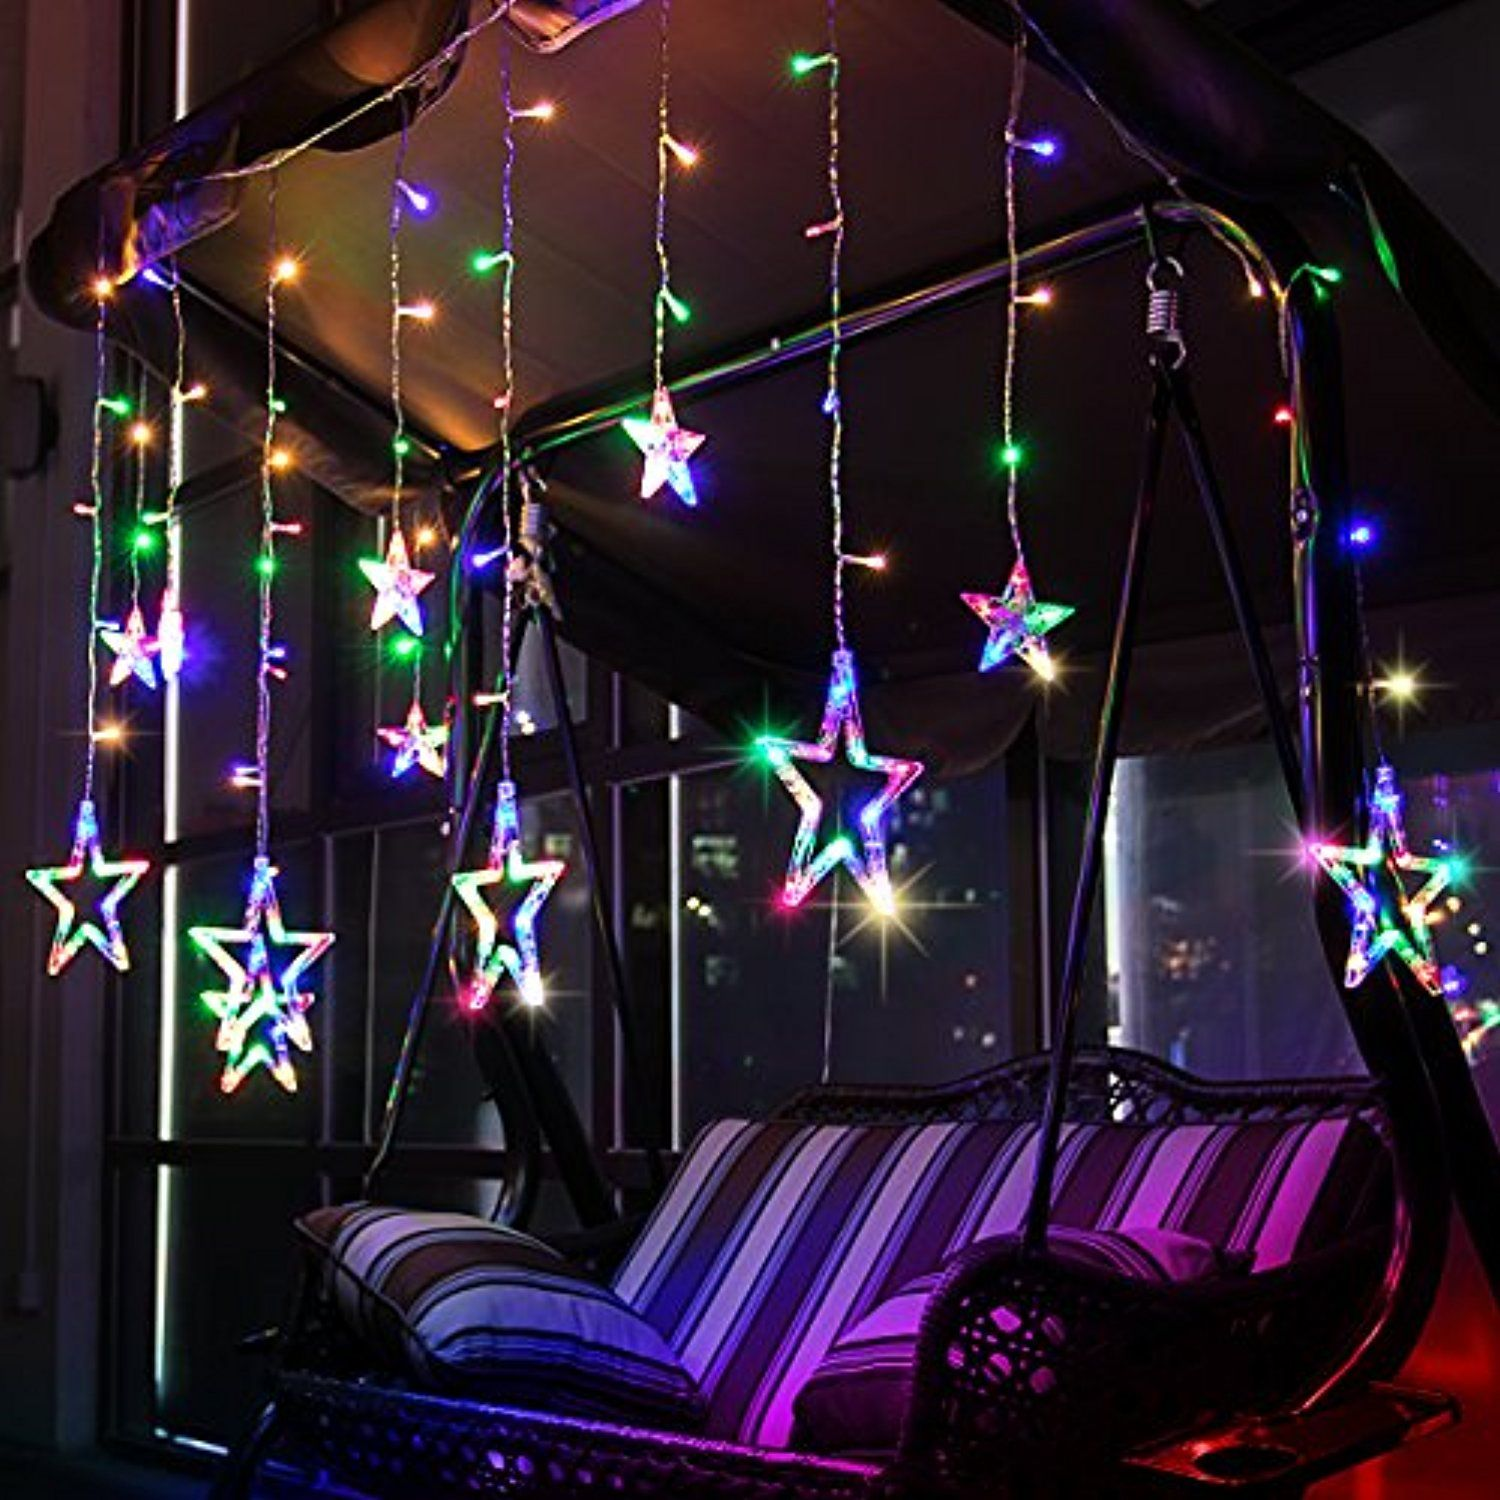 Star Curtain Lights Leorx 12 Stars 138 Leds Window Curtain Lights